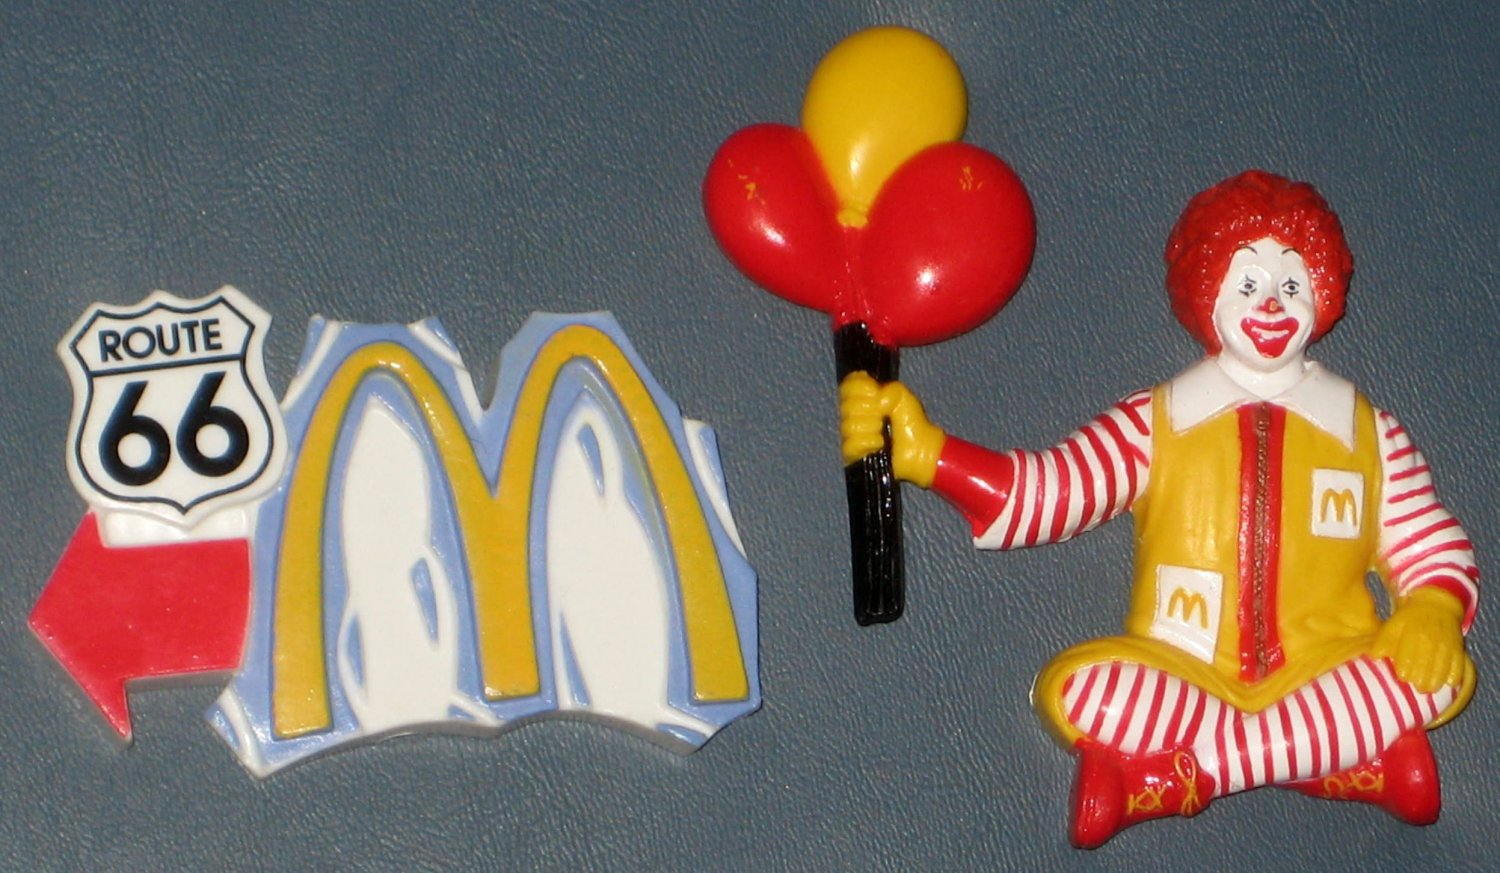 McDonald's is an American fast food company, founded in as a restaurant operated by Richard and Maurice McDonald, in San Bernardino, California, United allxpreswts.ml rechristened their business as a hamburger stand, and later turned the company into a franchise, with the Golden Arches logo being introduced in at a location in Phoenix, Arizona.